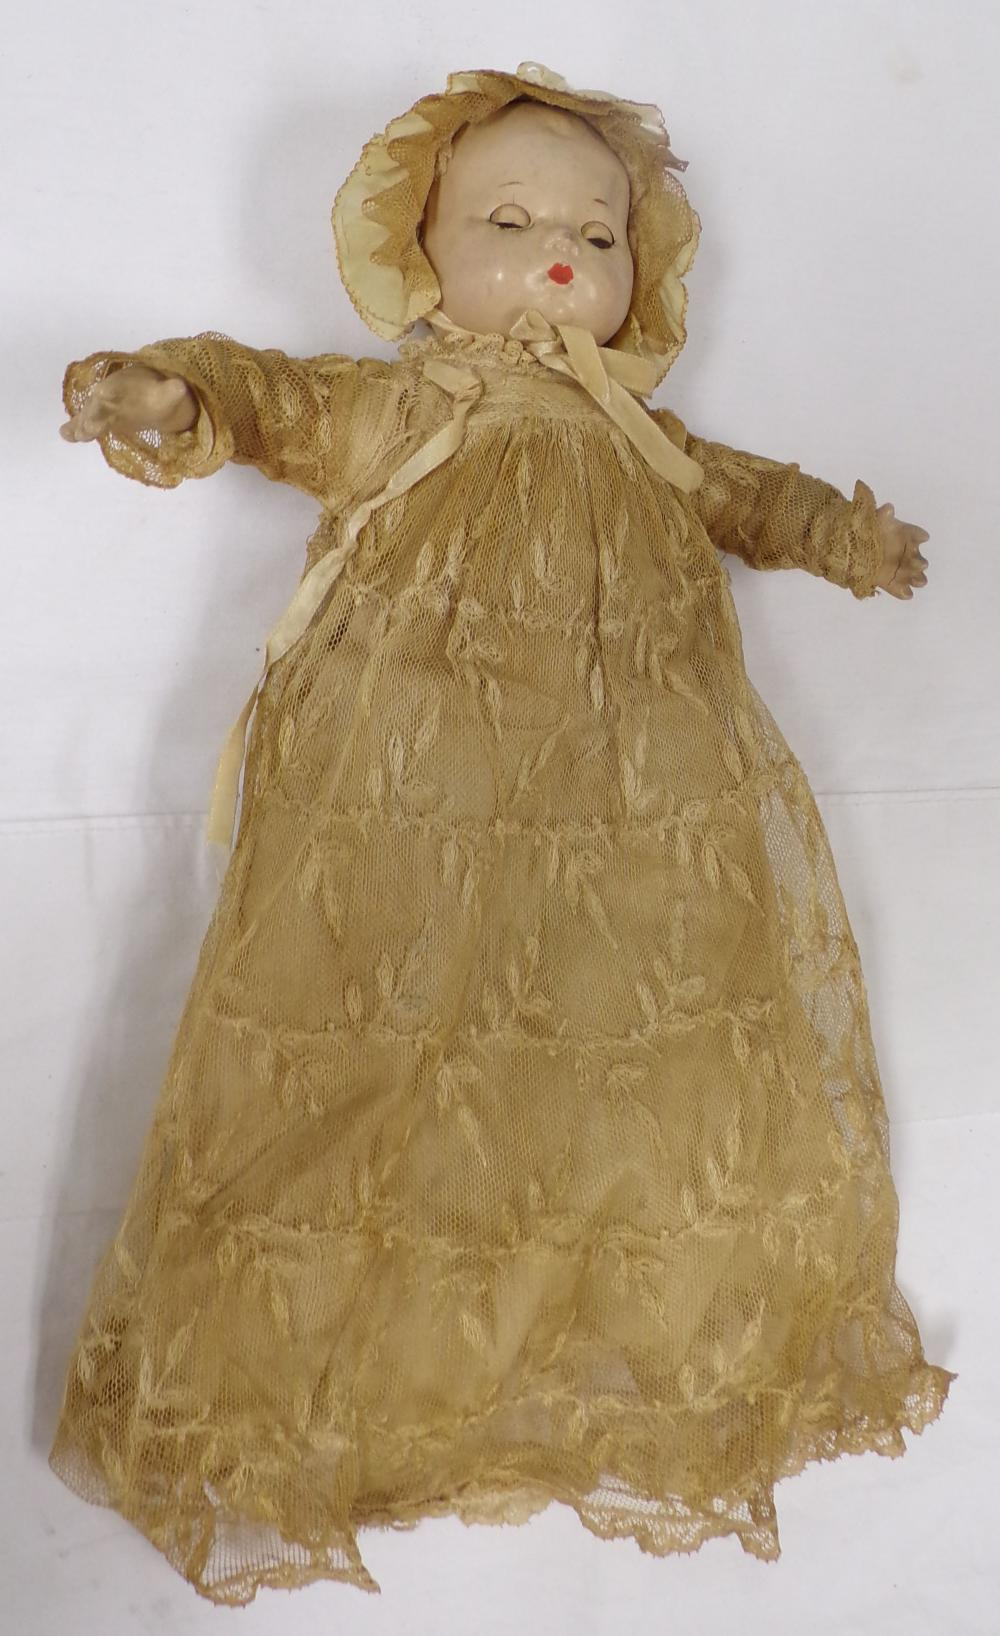 Composition doll marked Alexander in lace bonnet & dress having a jointed body, some crazing on legs,